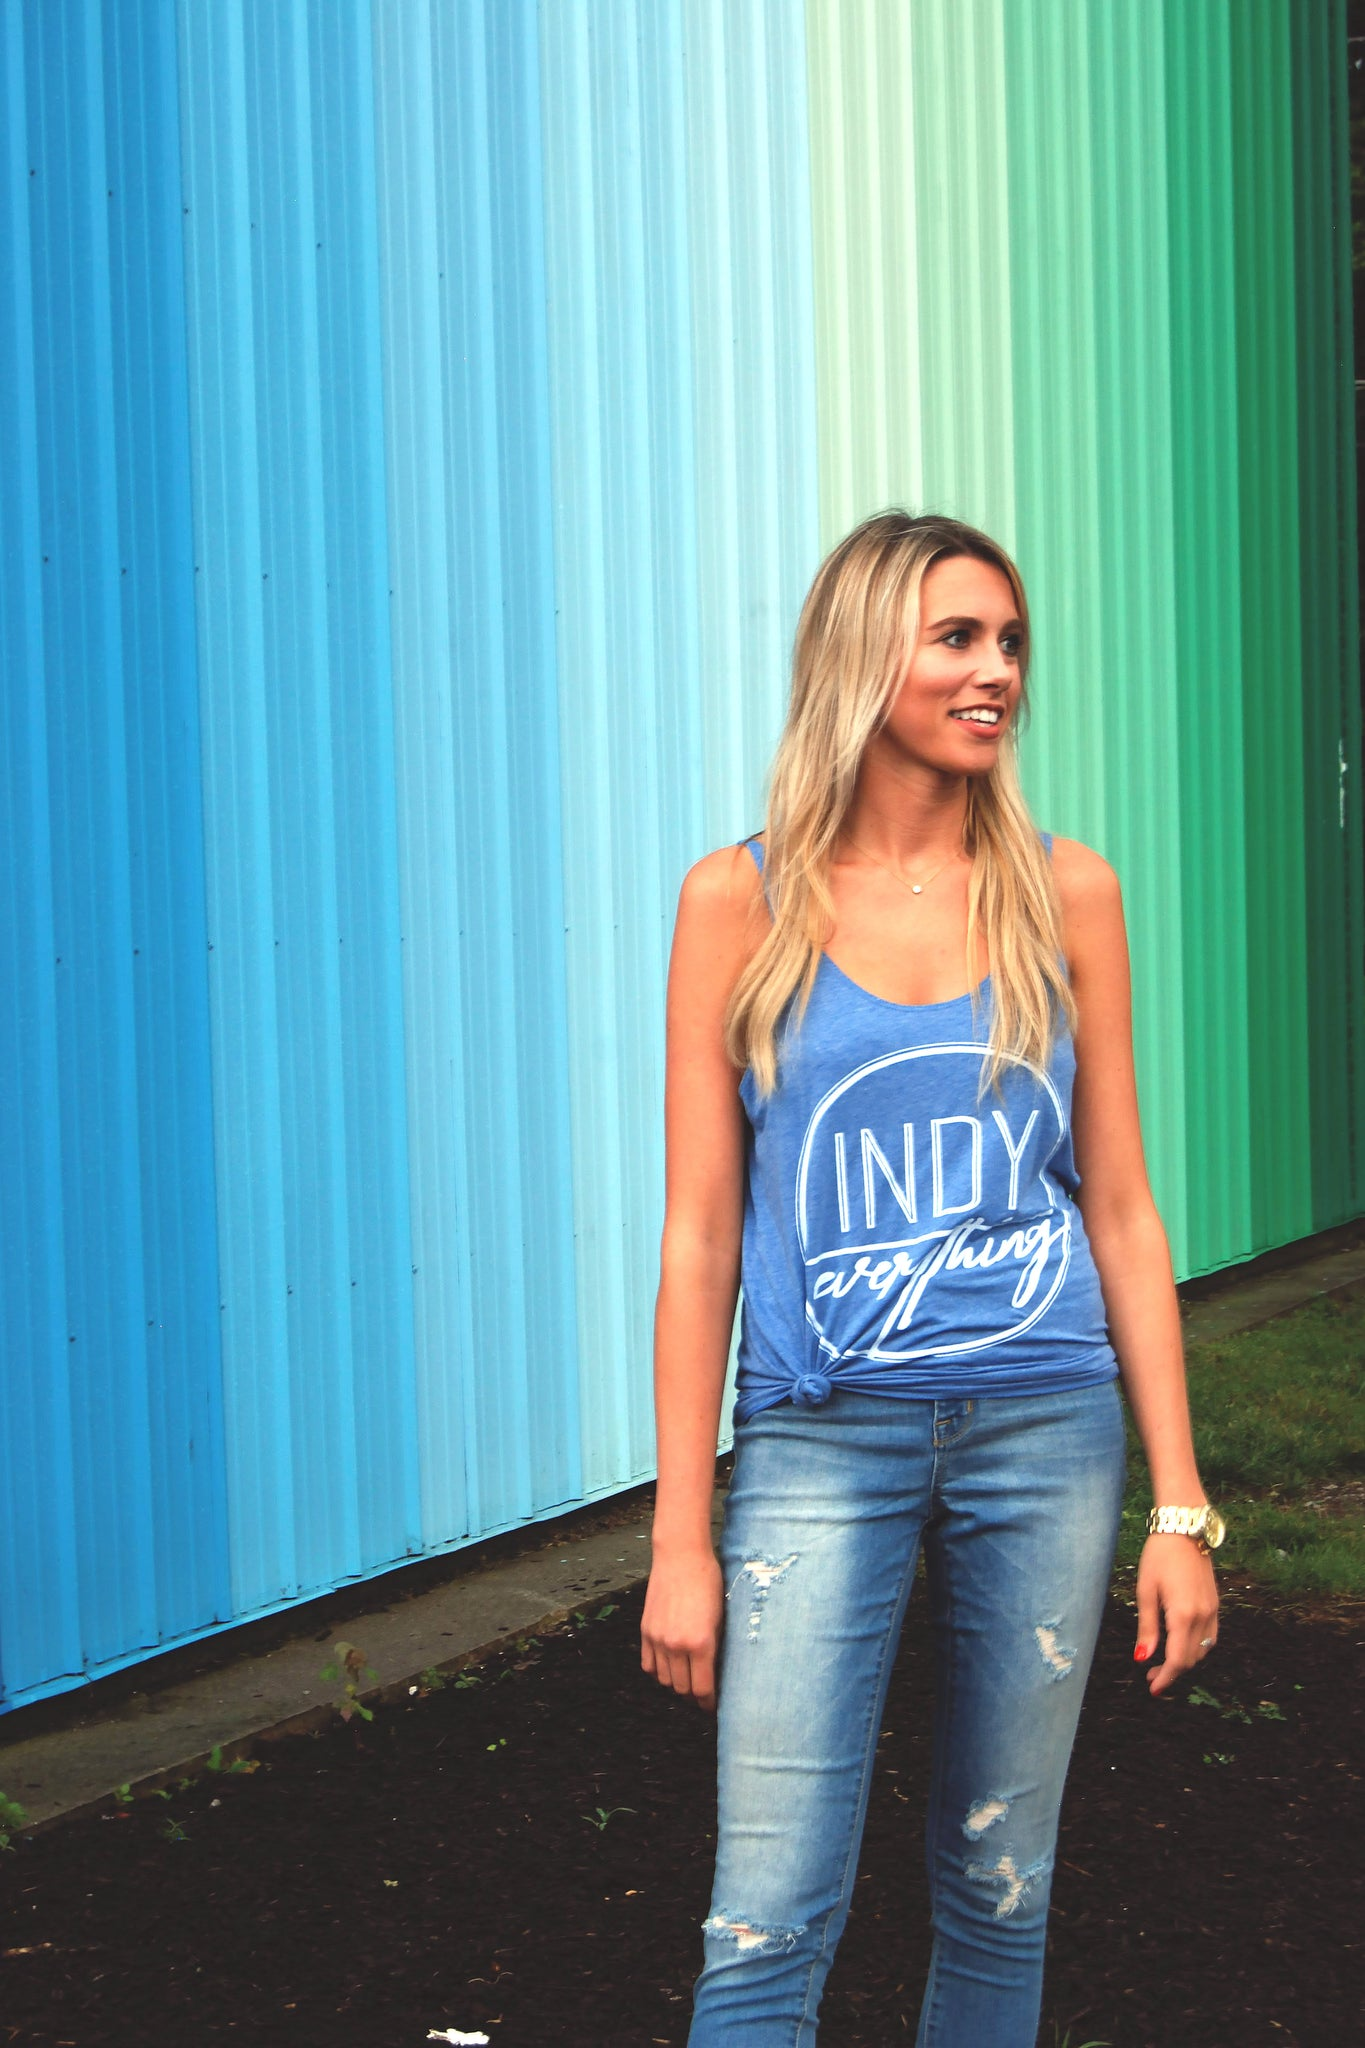 LOGO TANK - Indy Over Everything